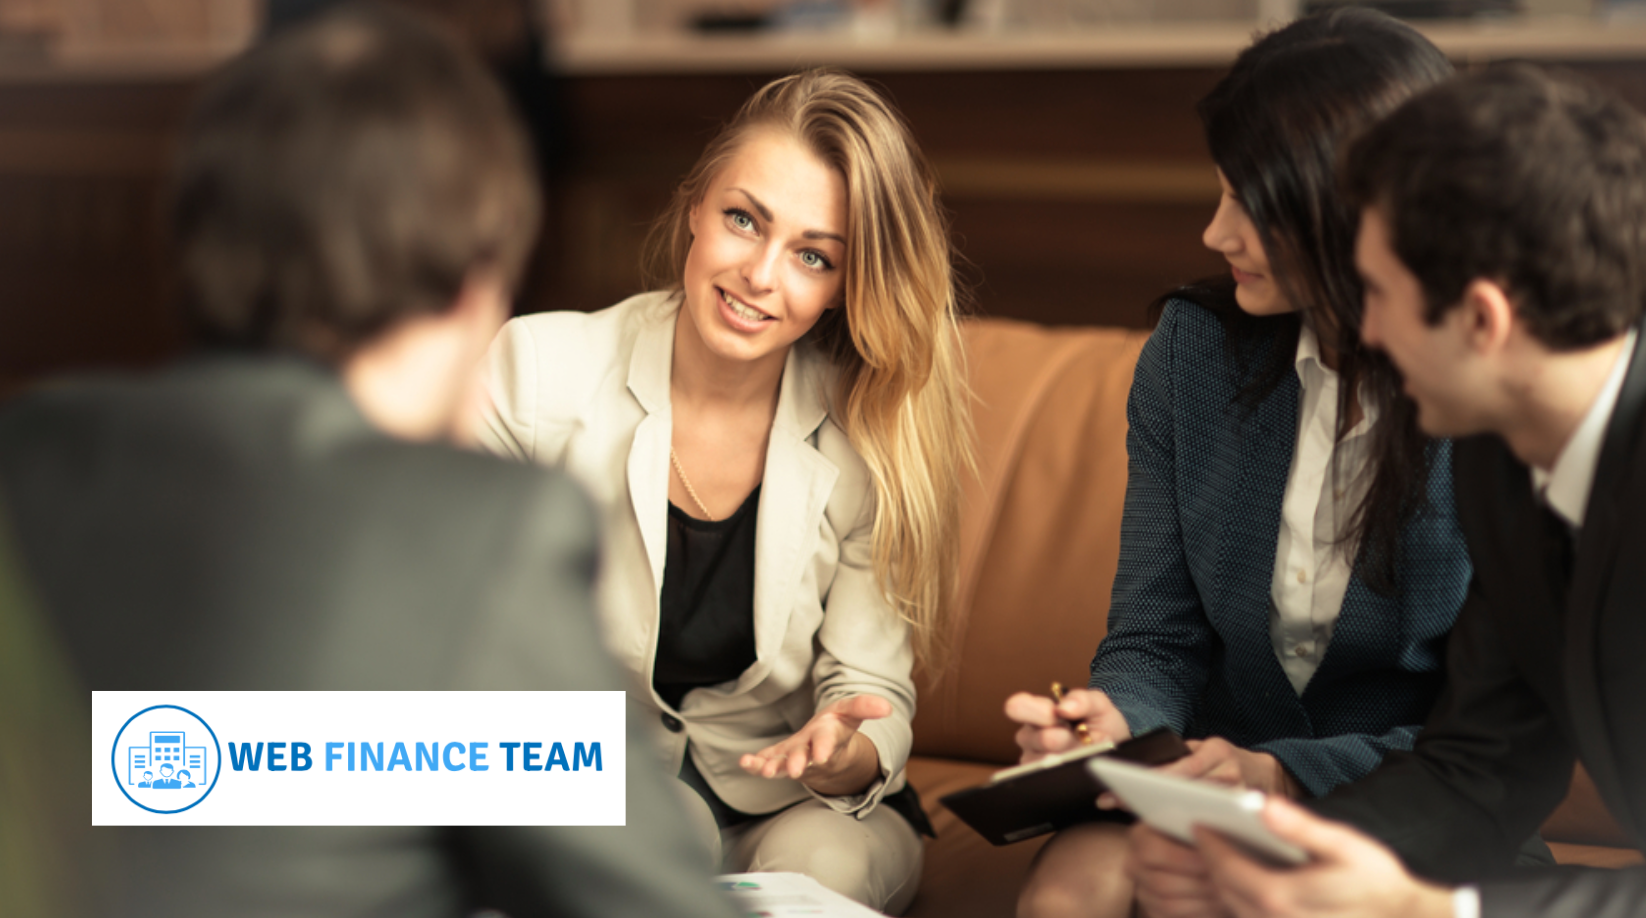 Reasons why you should get services from Web Finance Team LLC.